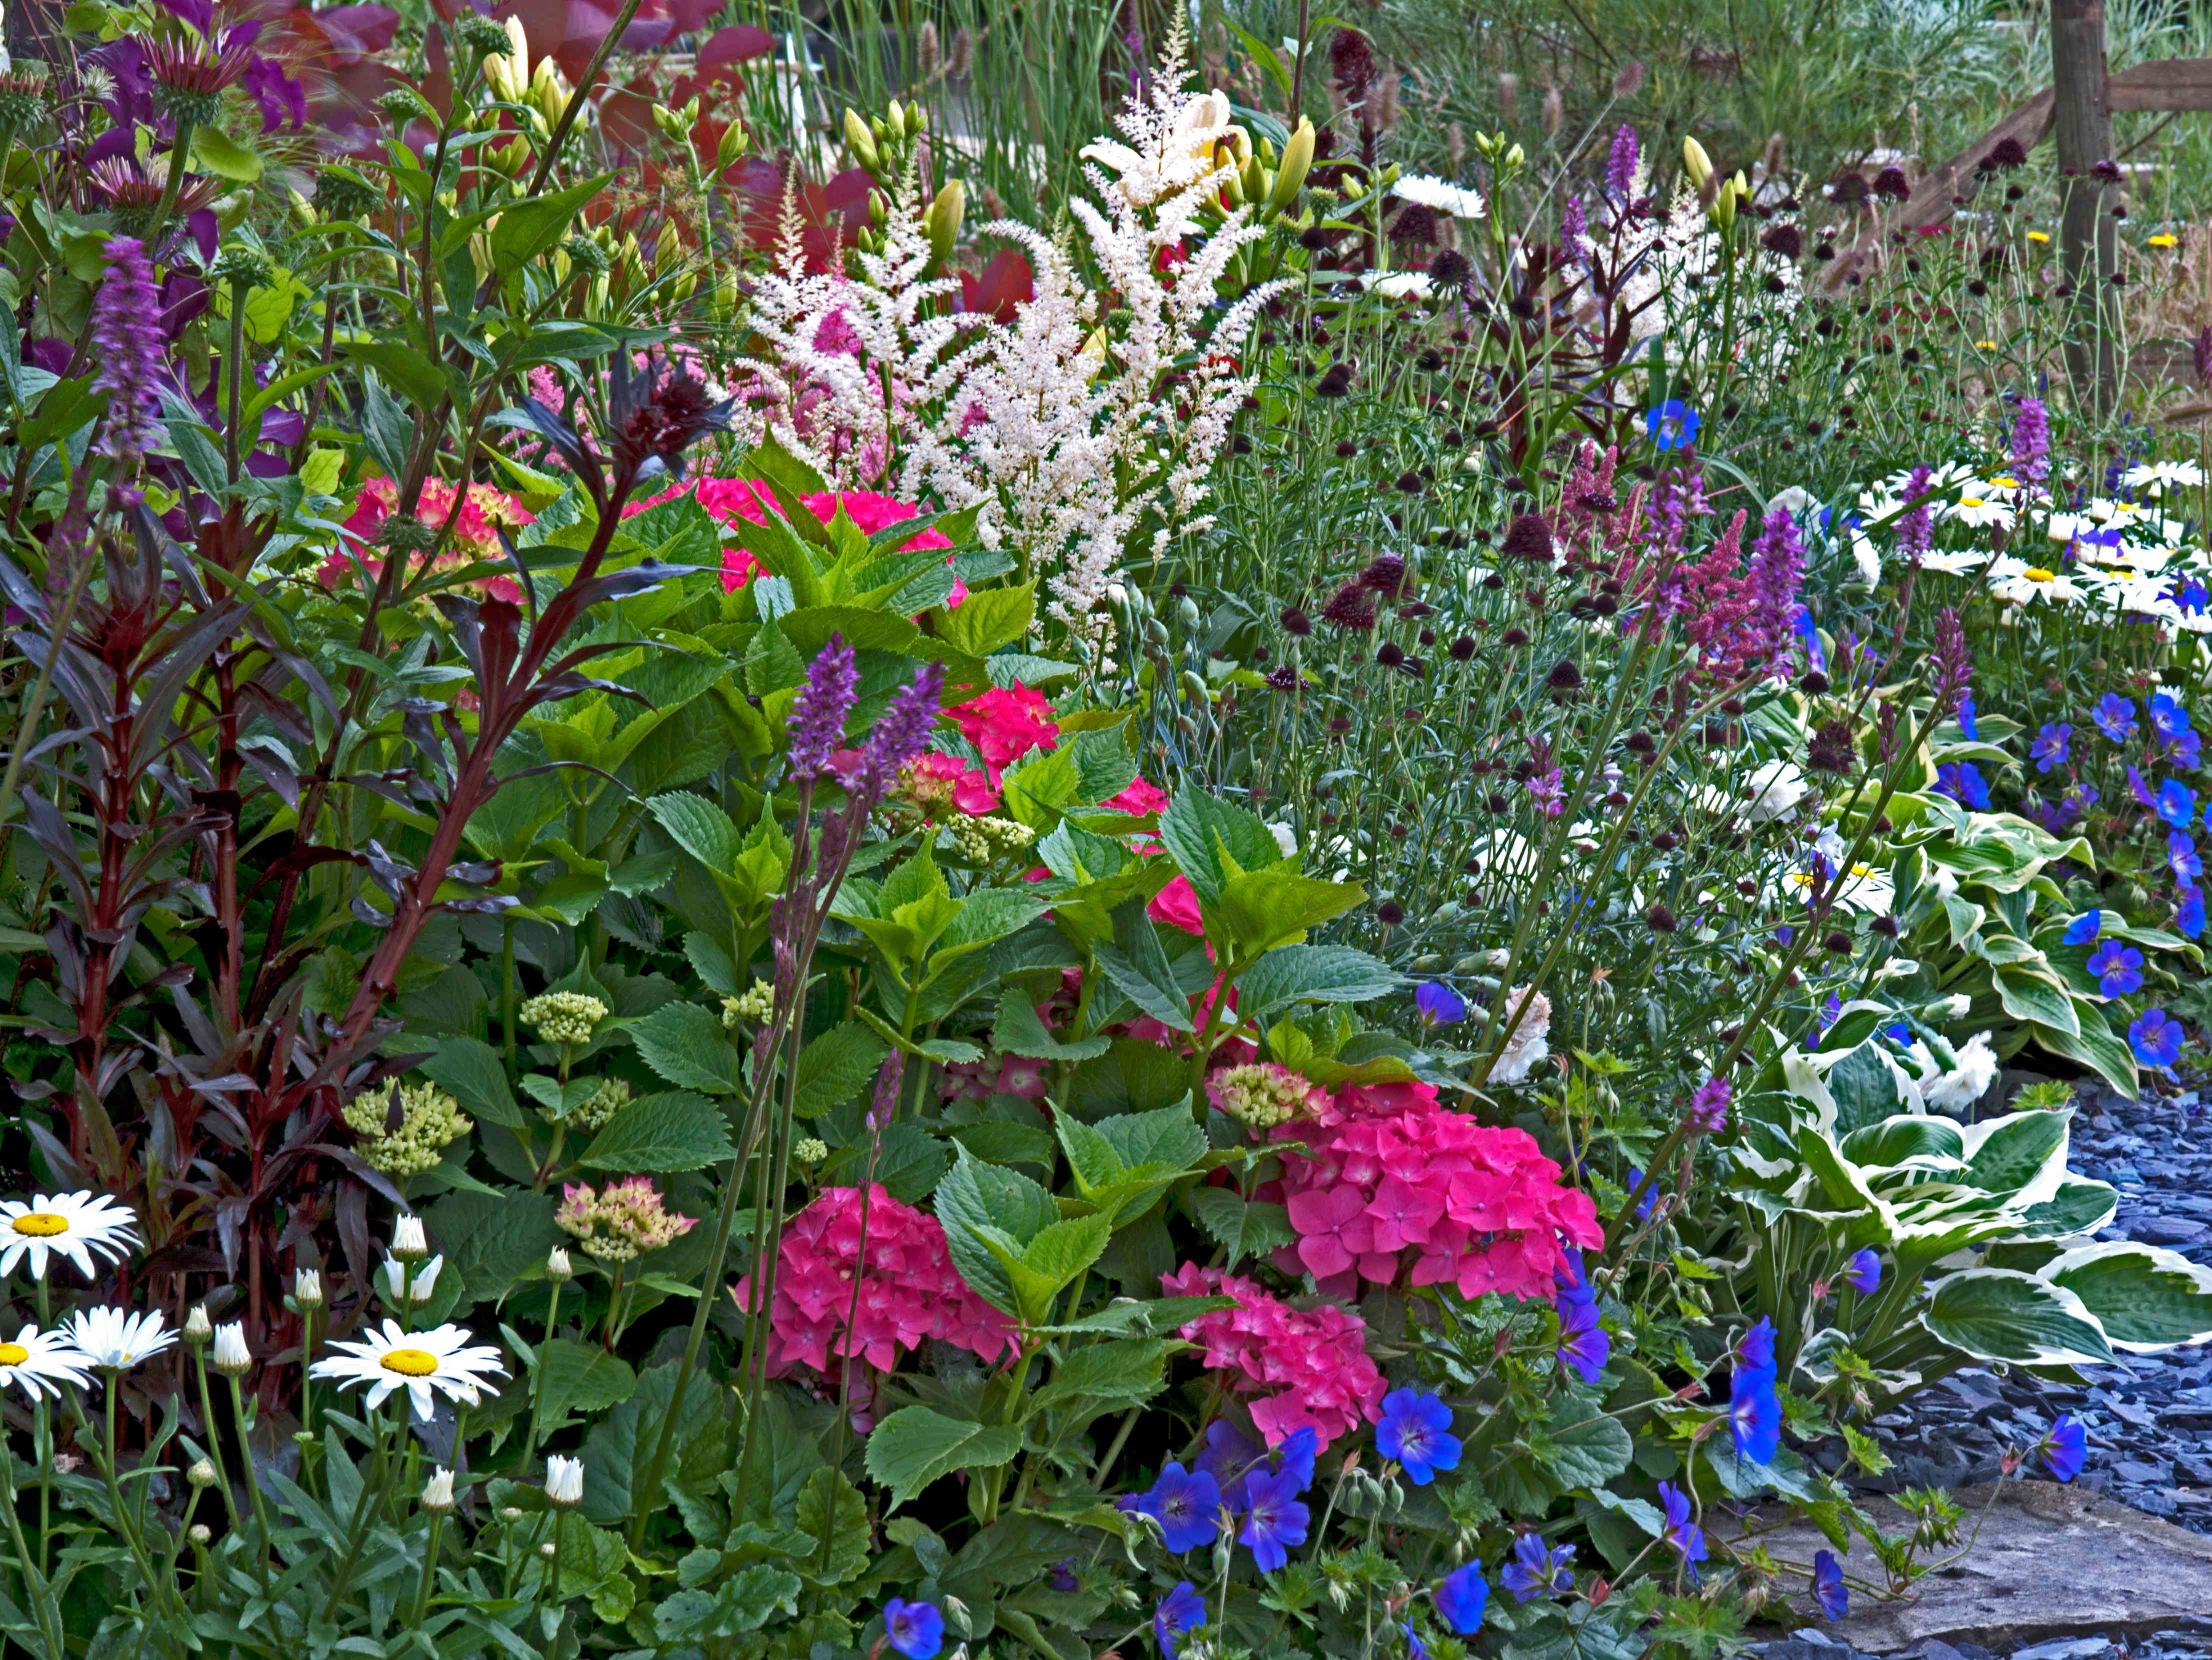 a field of flowers and plants growing in a garden